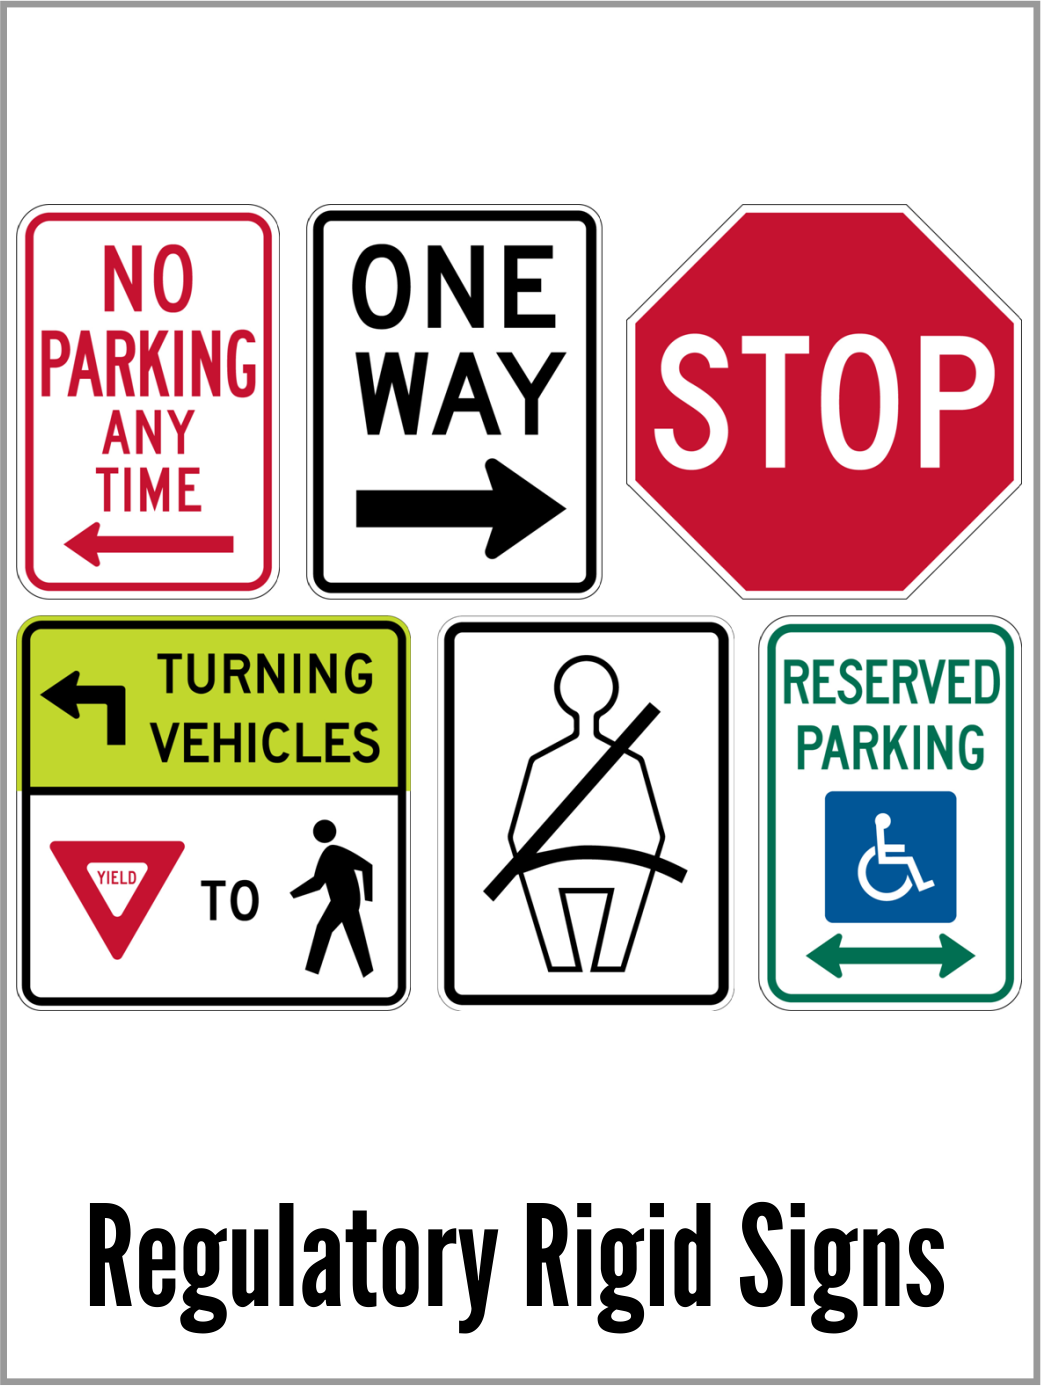 metal signs, one way sign, parking signs, stop signs, handicapped sign, aluminum sign, road sign, public works